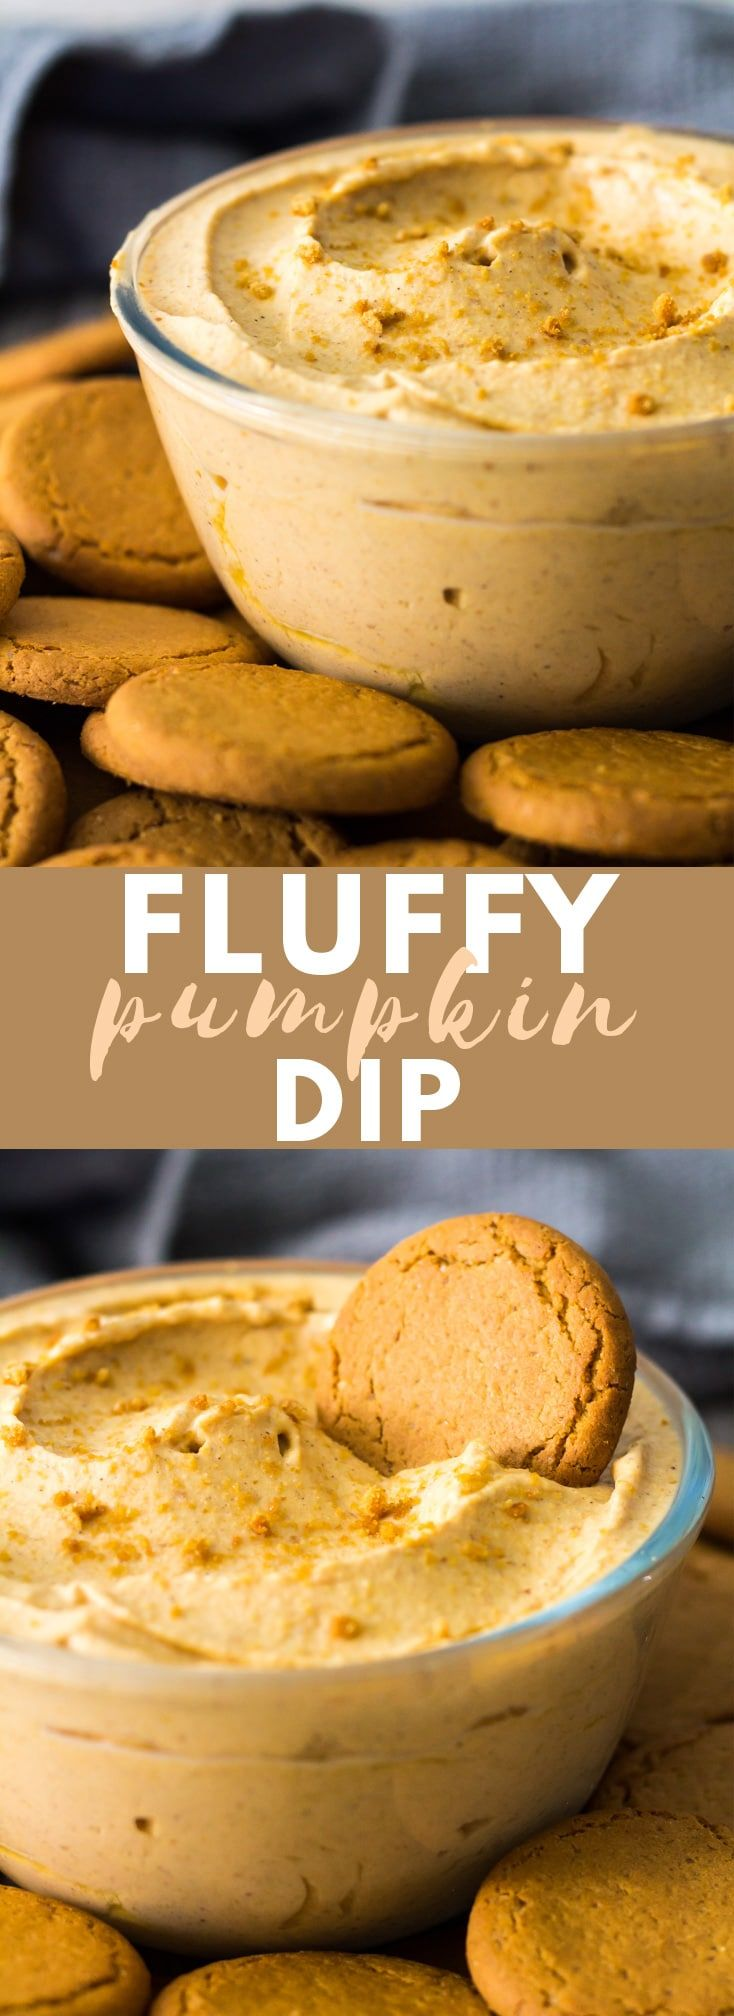 Fluffy Pumpkin Dip - Deliciously light and fluffy whipped pumpkin dip that is loaded with warm spices. Perfect for serving at parties with apple slices, crackers, or cookies! #pumpkin #pumpkindip #nobake #dessert #autumn #fallrecipes #pumpkindip